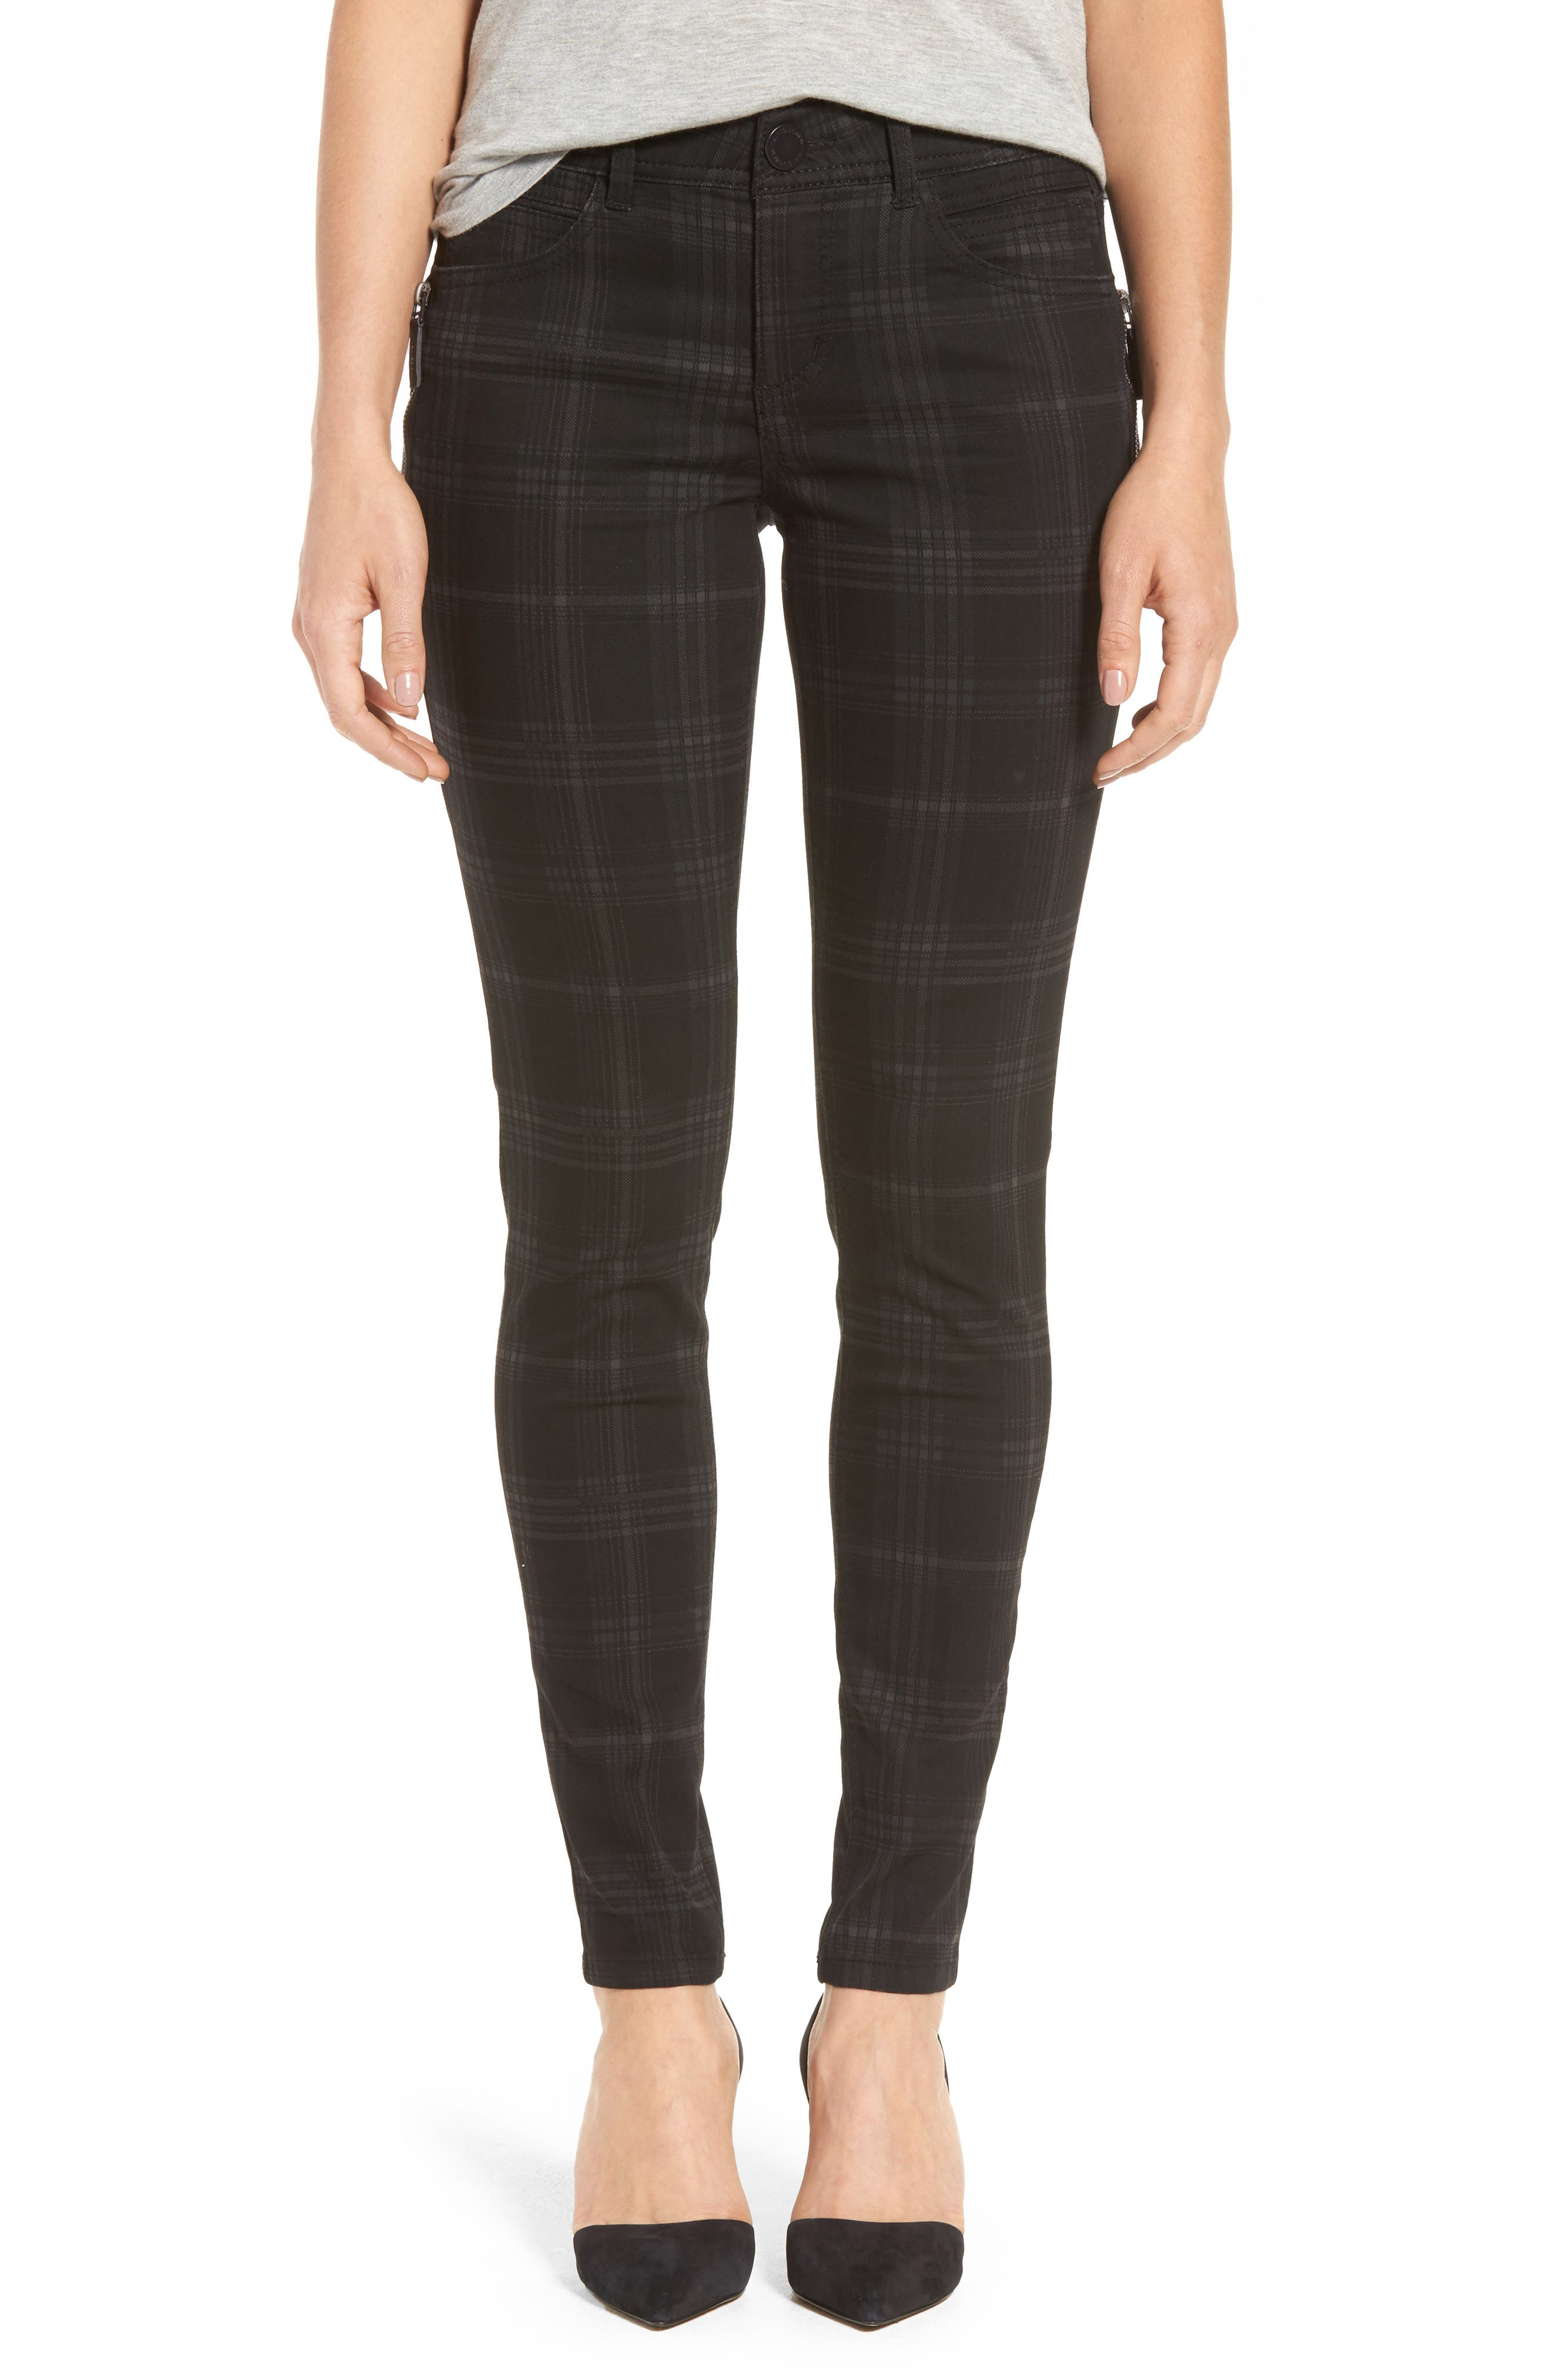 Wit & Wisdom Ab-solution Side Zip Plaid Skinny Pants (Regular & Petite) (Nordstrom Exclusive)